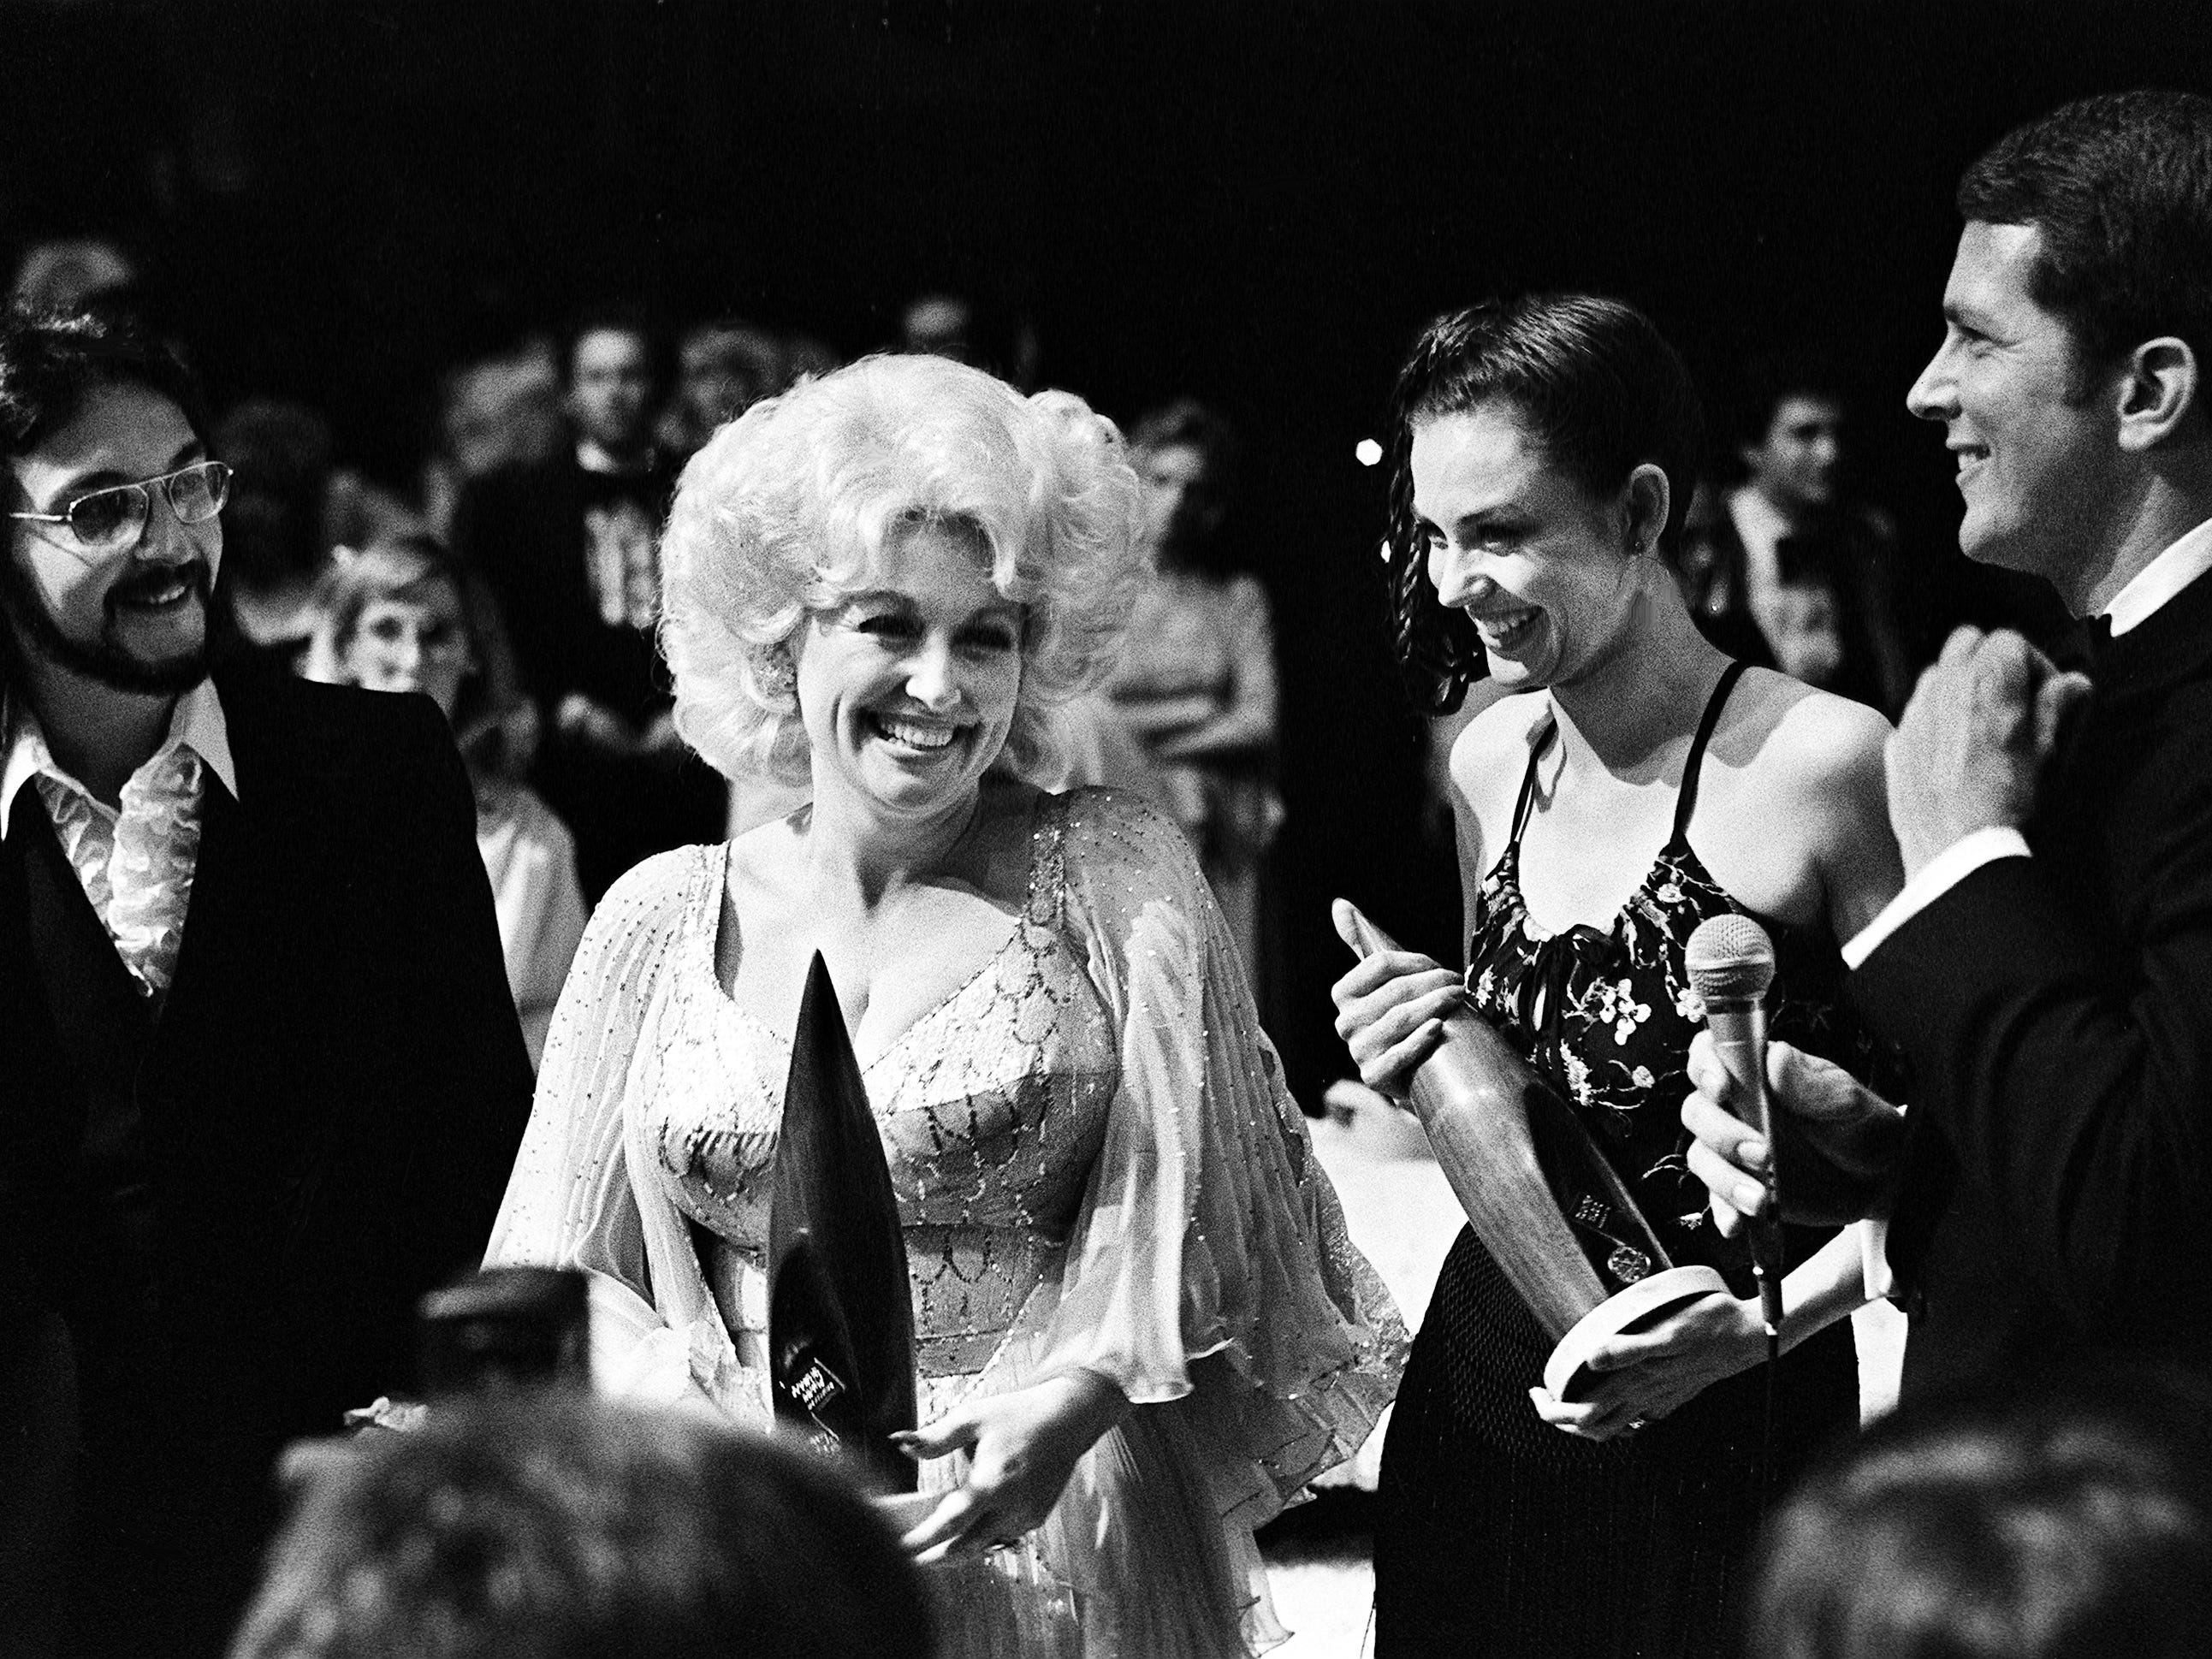 Entertainer of the Year winner Dolly Parton, second from left, talks with Female Vocalist of the Year winner Crystal Gayle before being interviewed backstage at the 12th annual CMA Awards show at the Grand Ole Opry House on Oct. 9, 1978.